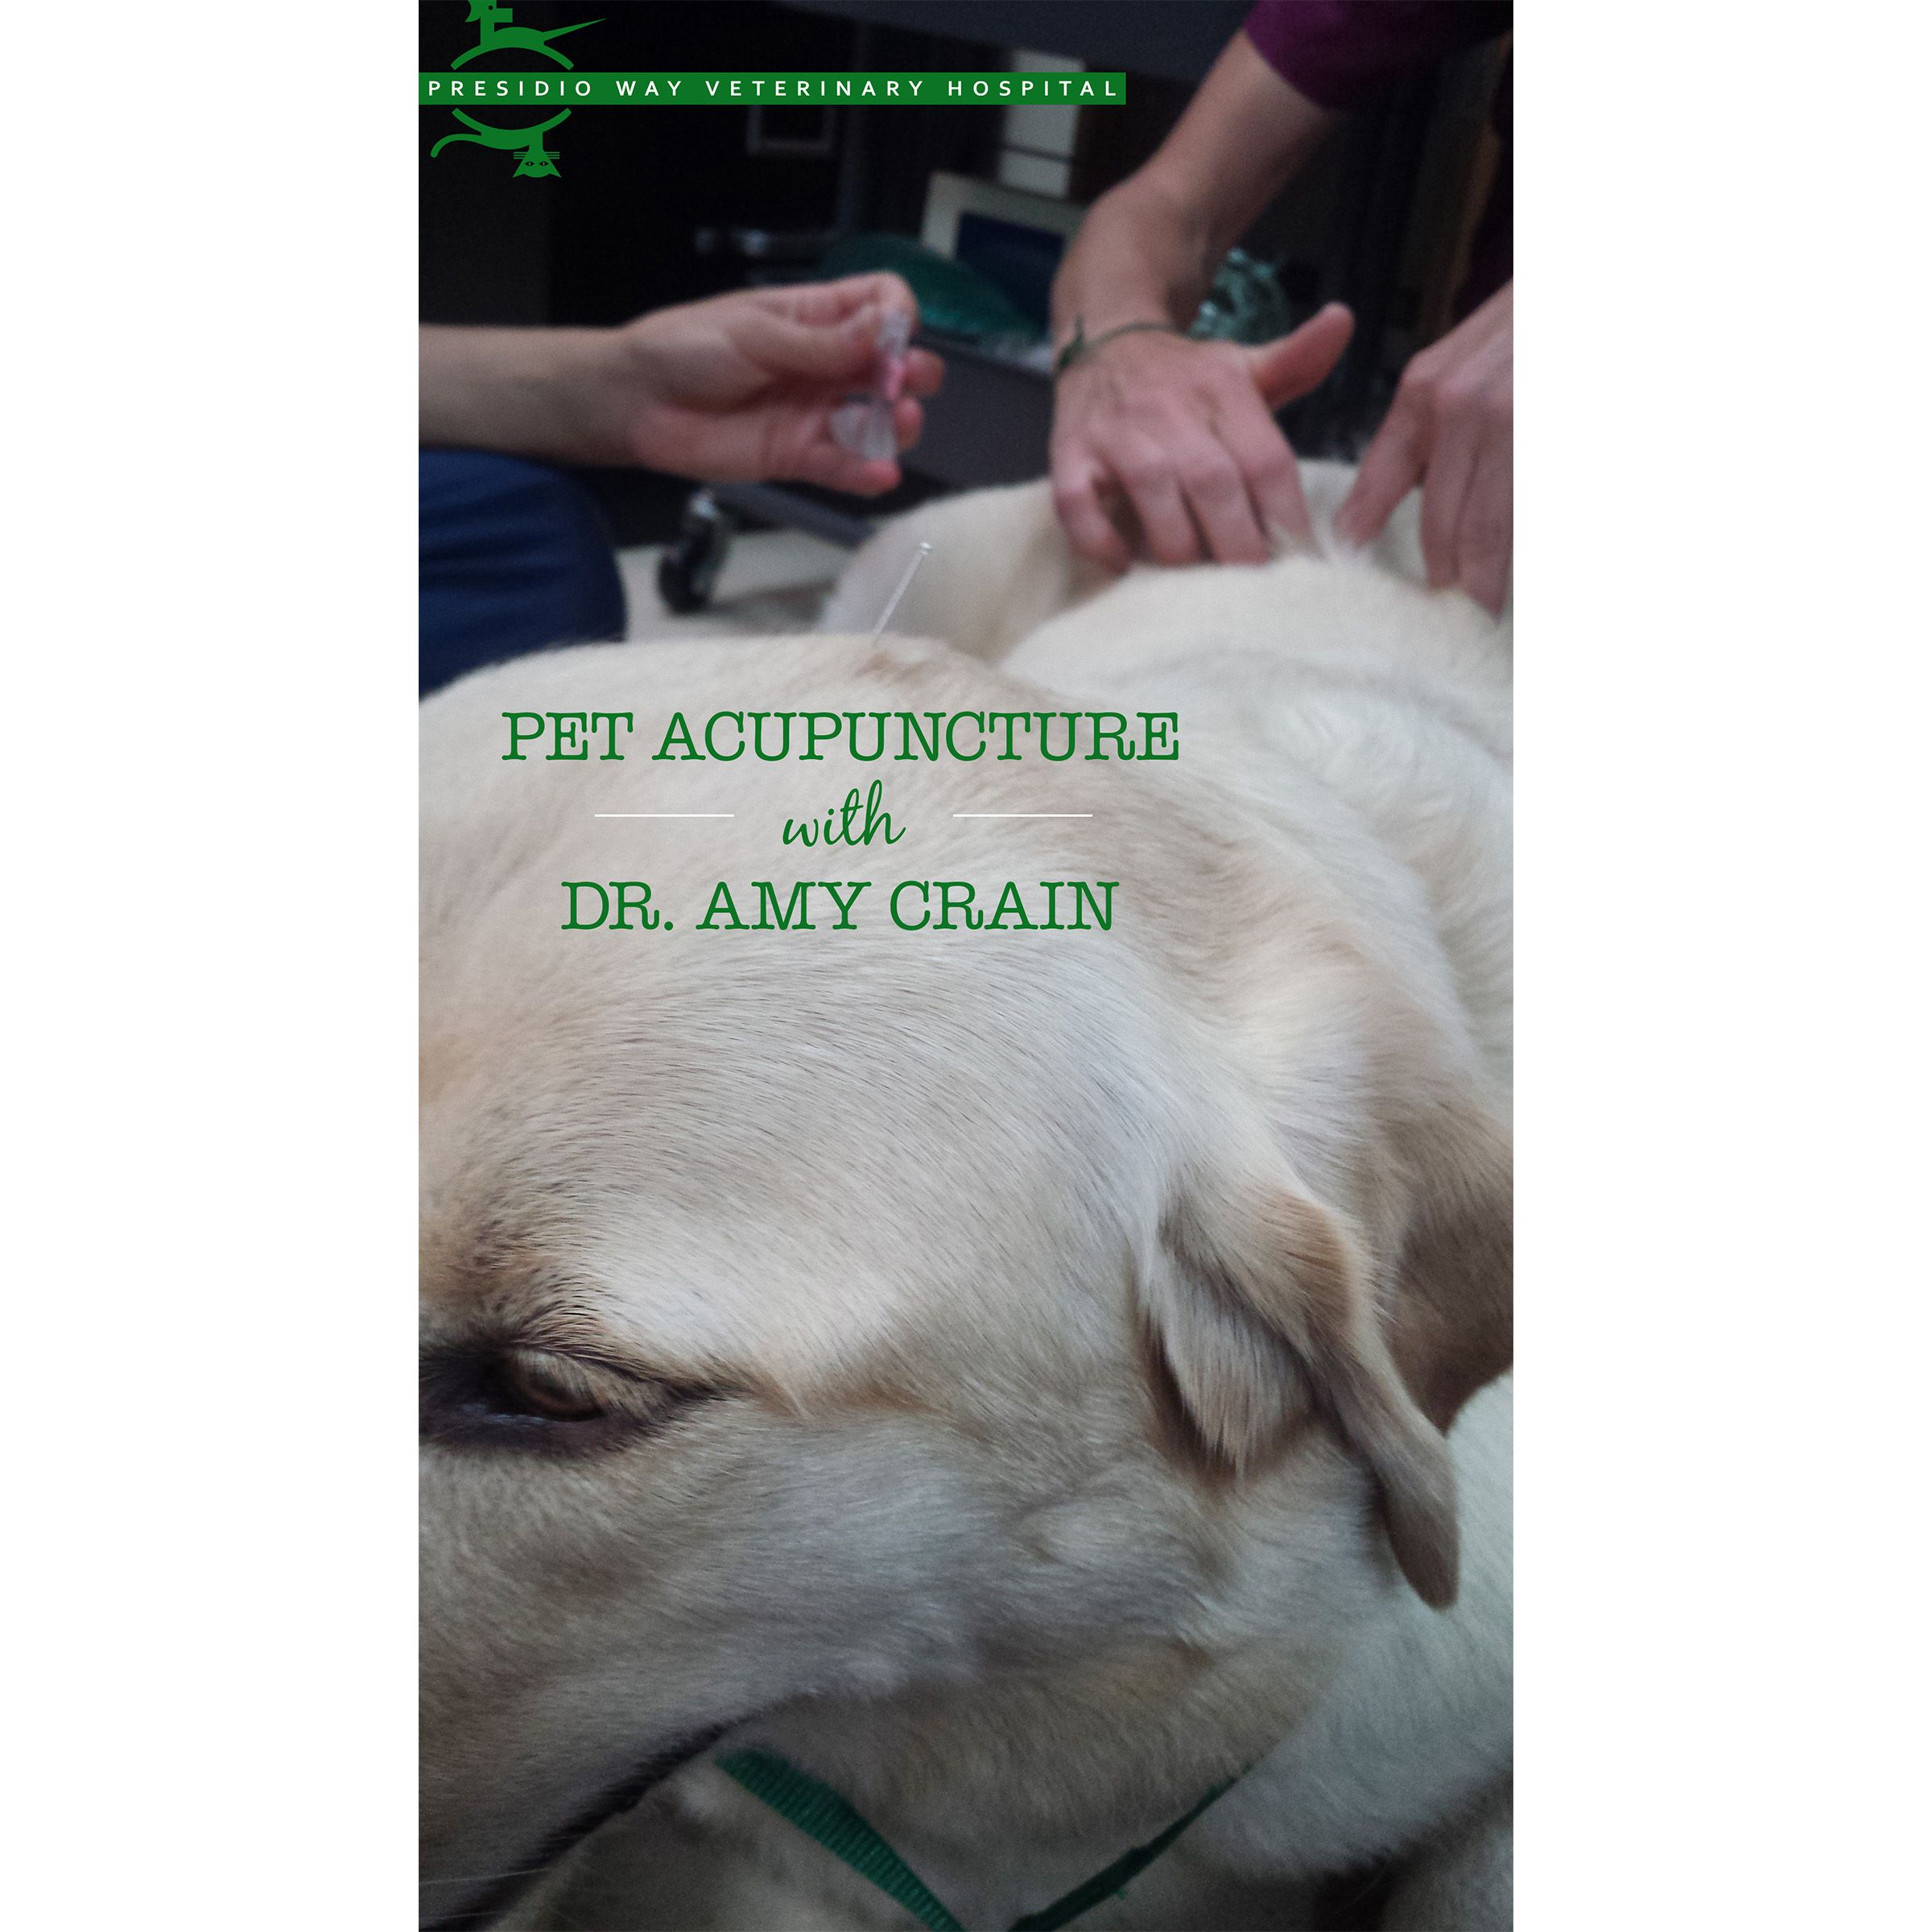 Did you know we offer veterinary acupuncture at Presidio